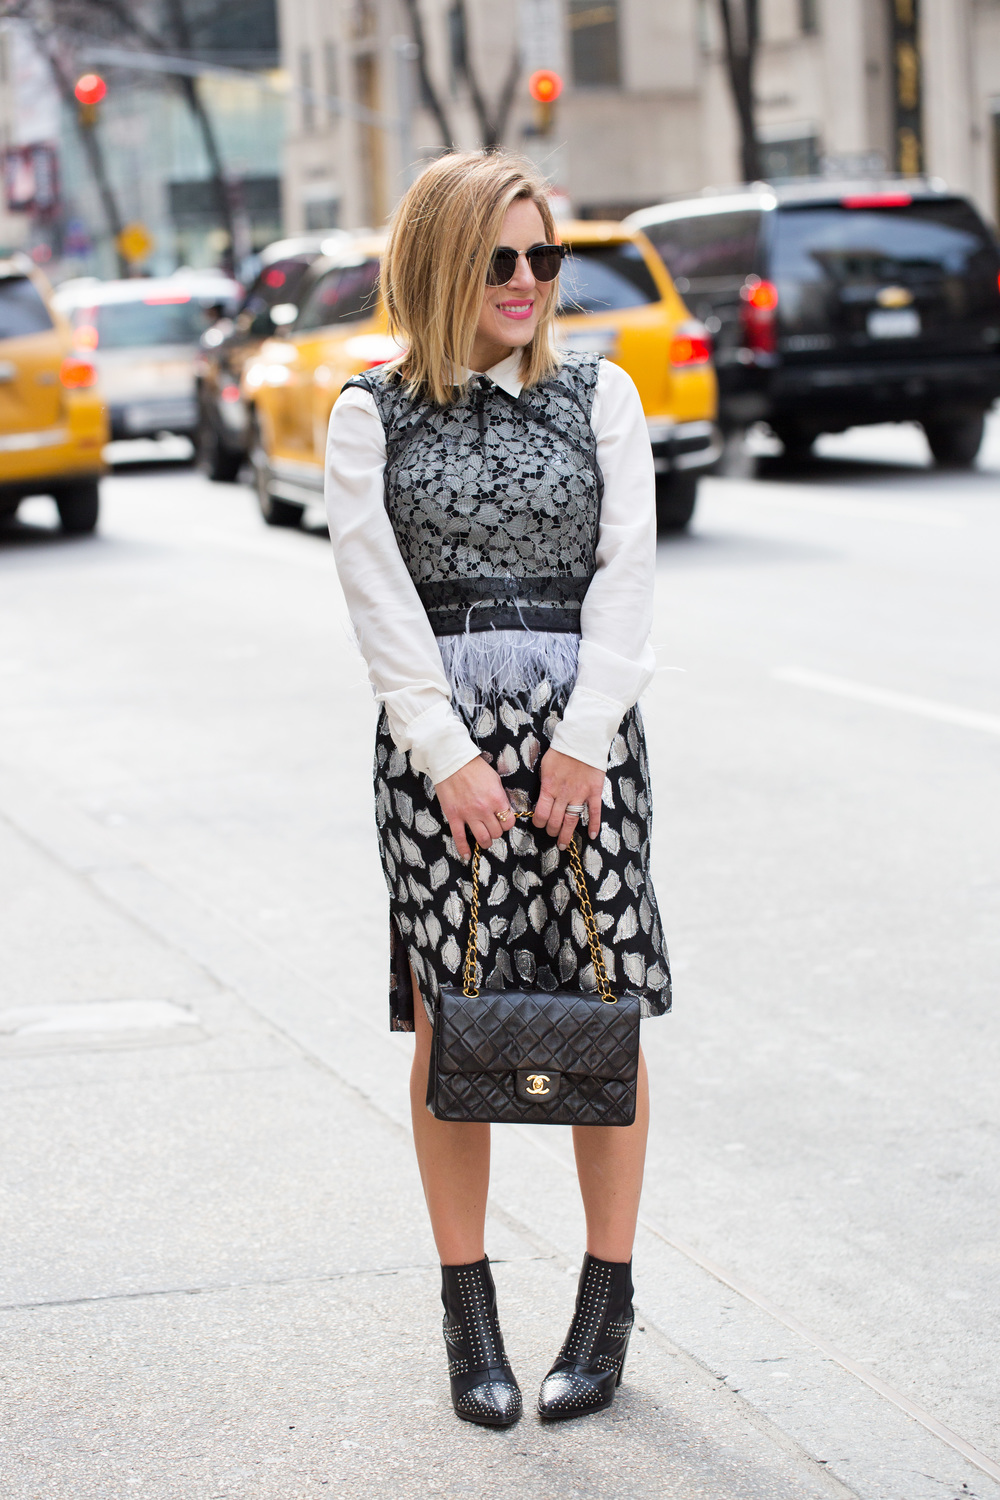 Self portrait and vintage dress with black quilted chanel purse 4.jpg